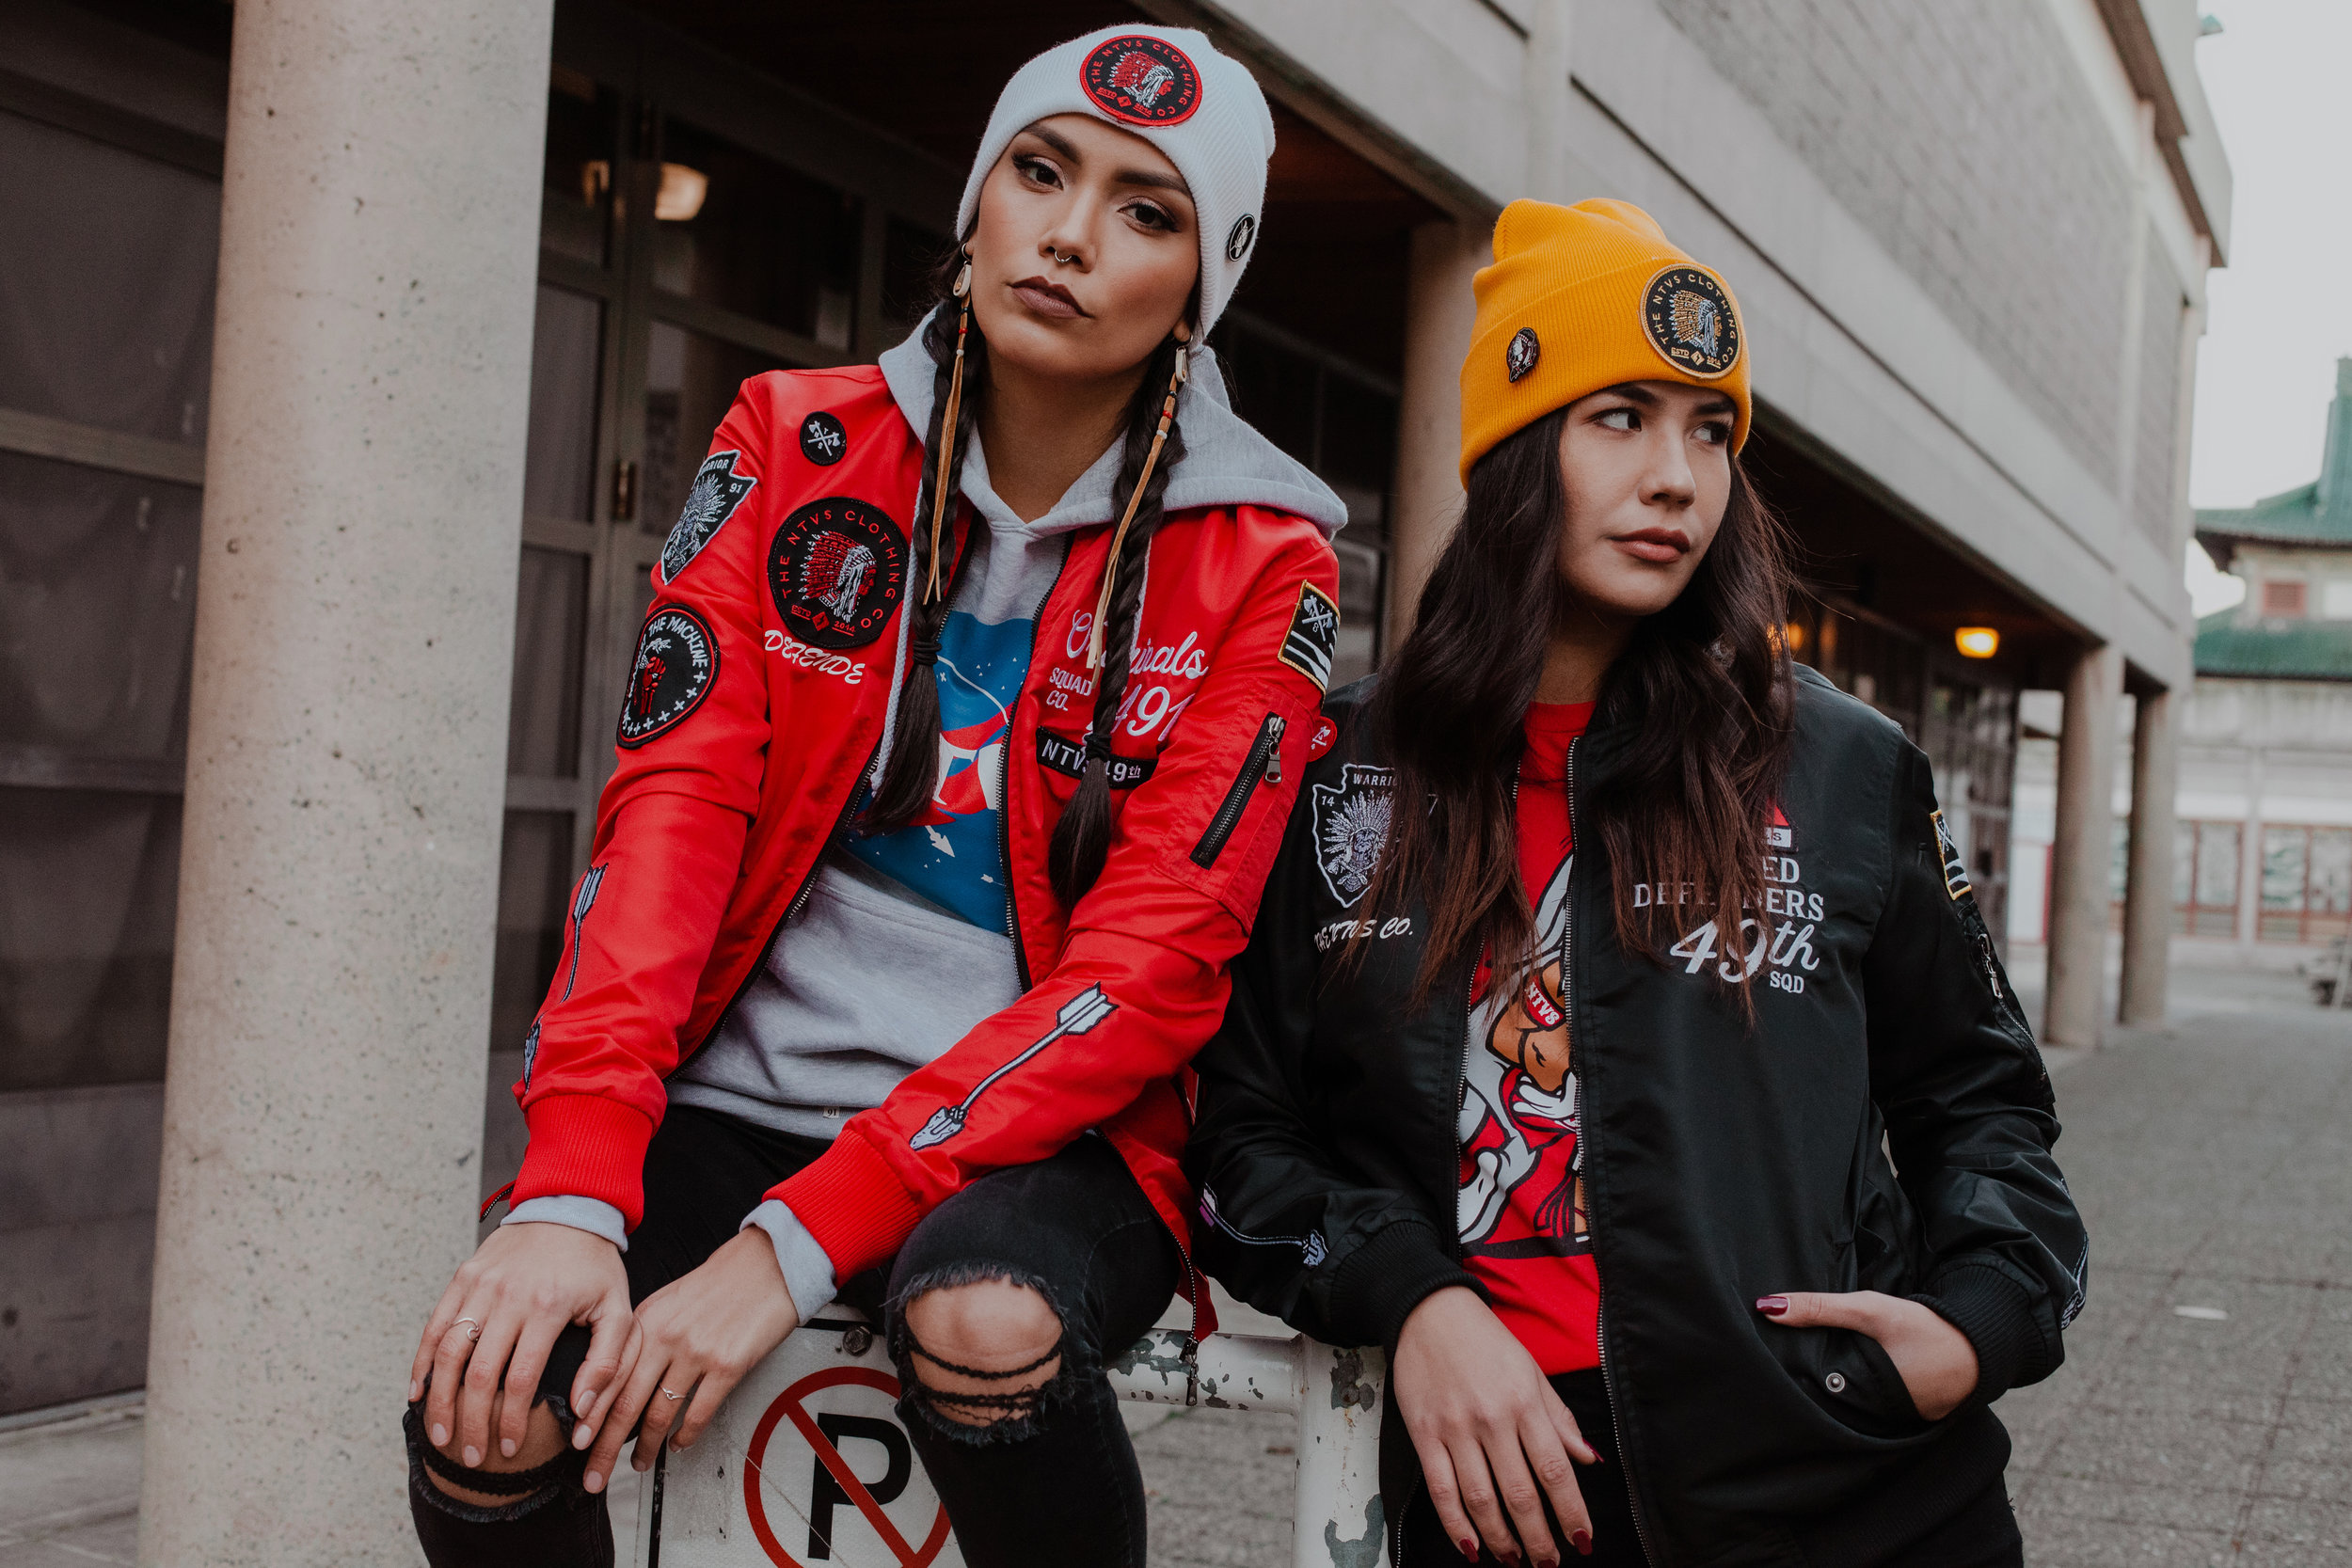 Red & Black Bombers are sure to sell out fast. Features a removable back patch that can be interchanged with other designs.